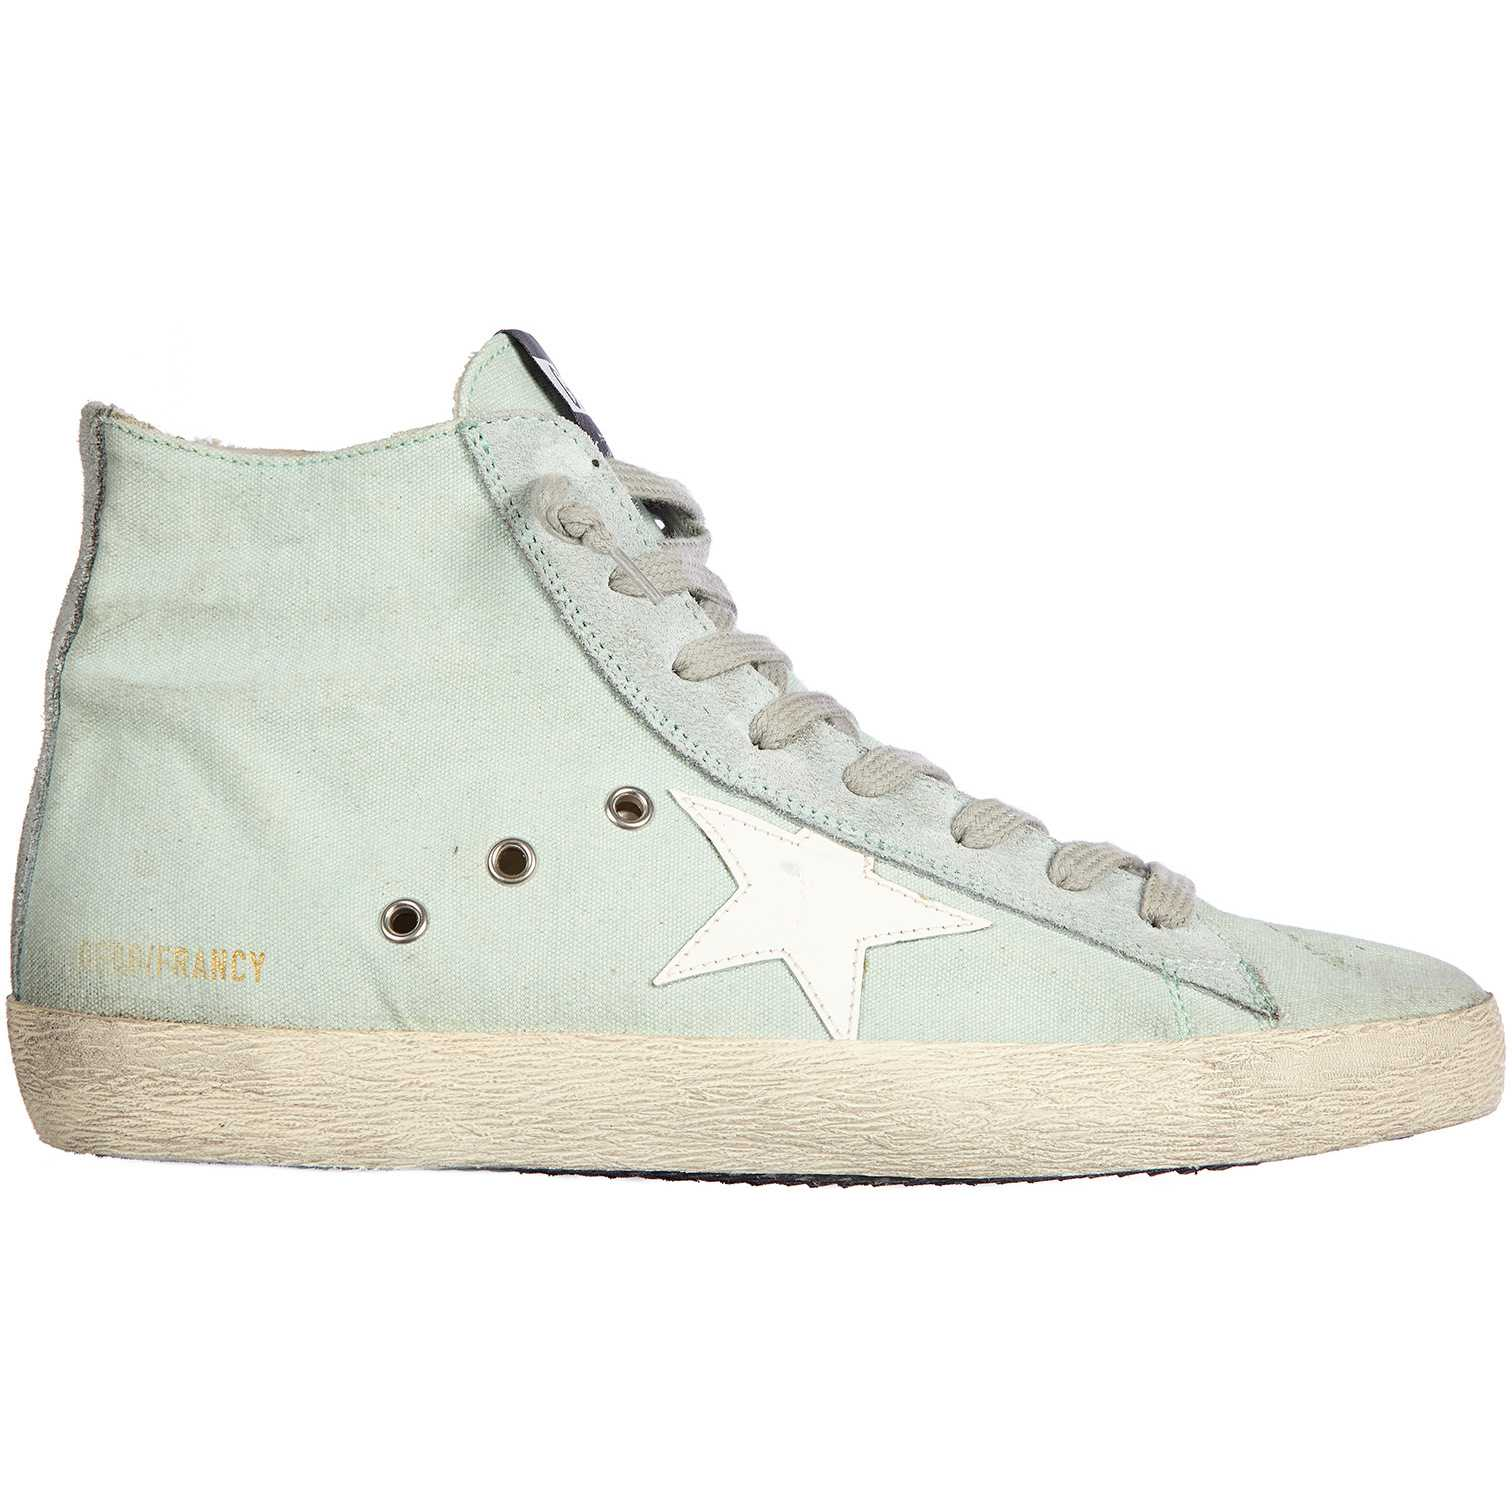 Golden Goose High Top Sneakers Francy Blue pentru femei